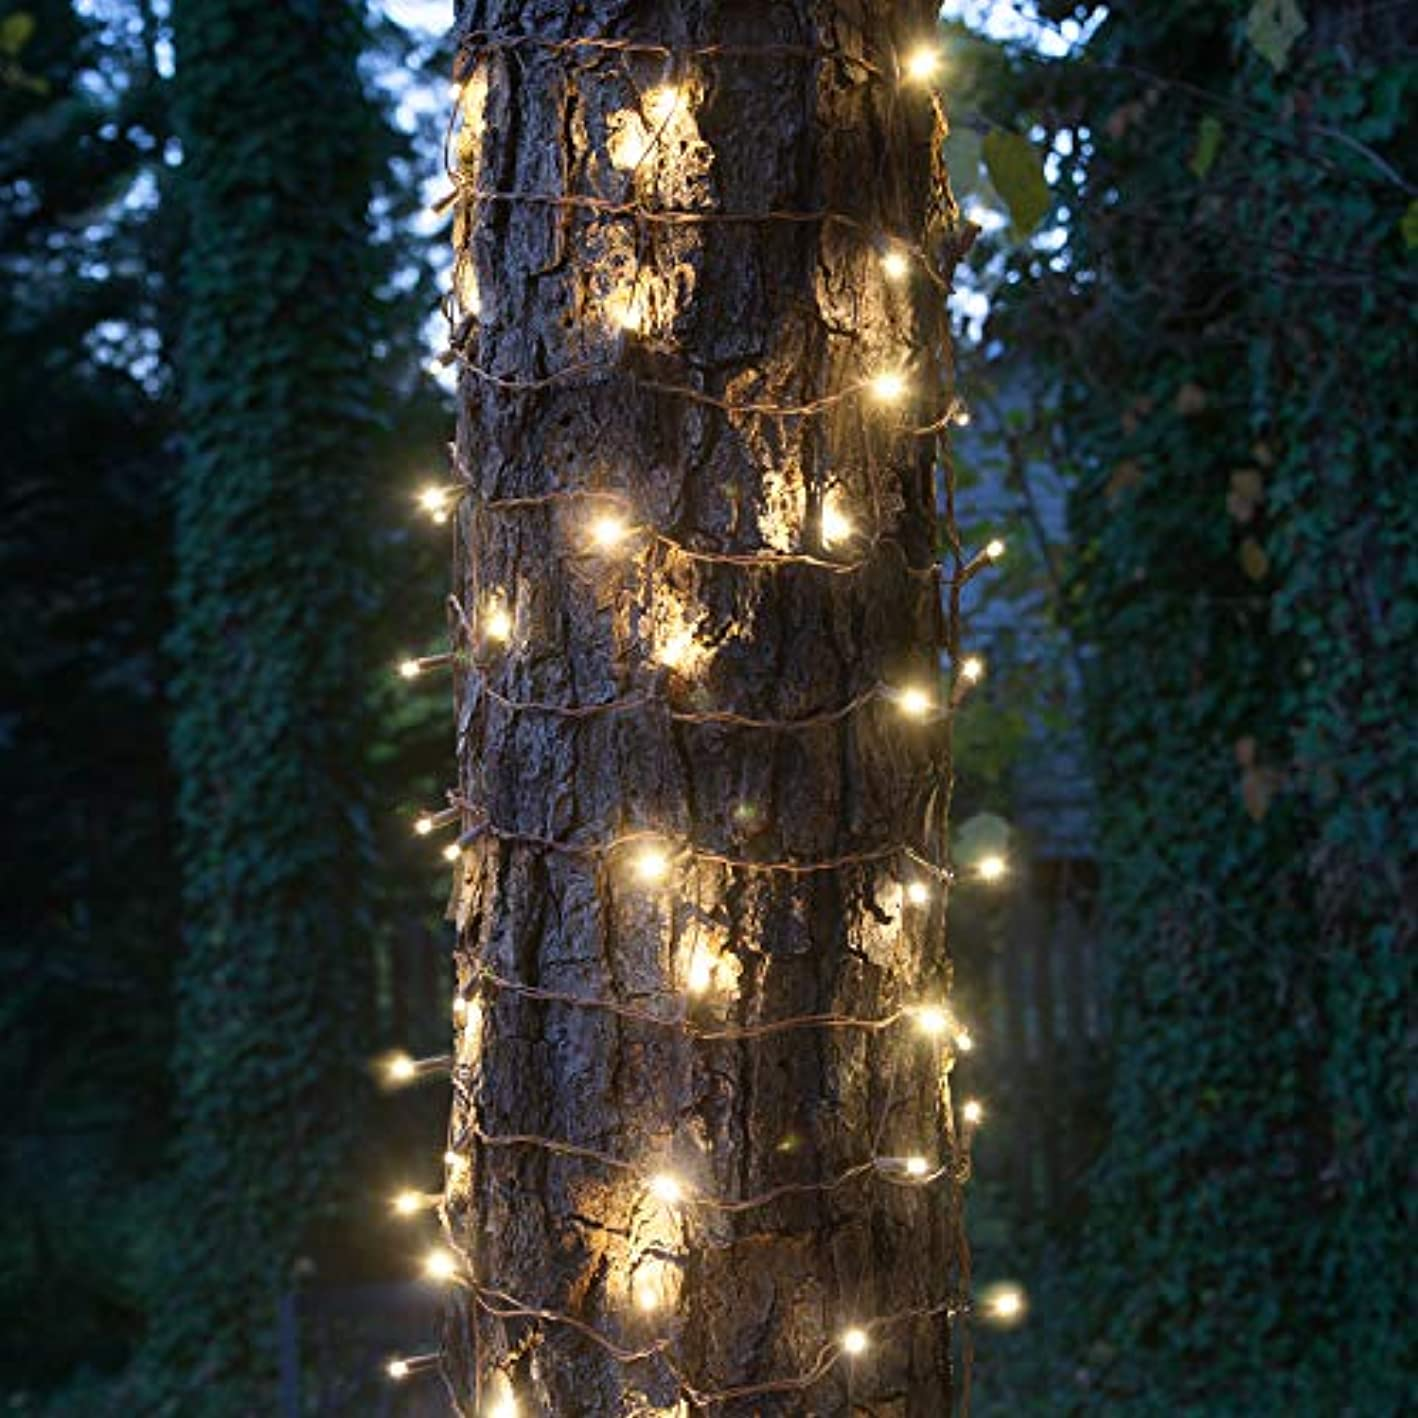 """StretchNet Pro Expandable Christmas Net Lights, Tree Wrap Lights - Trunk Wrap Lights, Column Christmas Lights - Column Wrap Lights (50 Lights, 20"""" x 45"""" Net, Warm White Trunk Wrap Lights, Brown Wire)"""